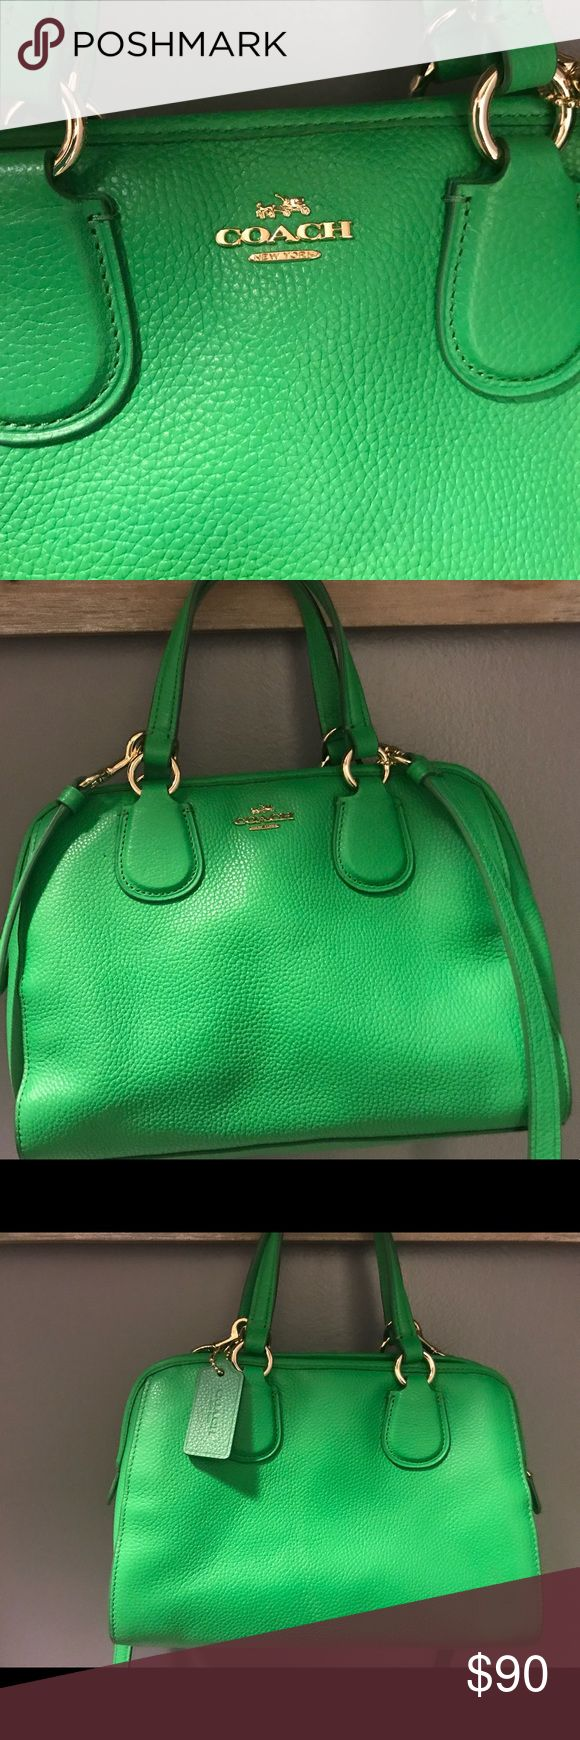 Coach purse This is an adorable apple green Coach purse. I carried this one time as it matches an outfit I wore to a function. It needs a home where it will be used. It comes with the Coach bag for protection. It has a removable shoulder strap. Great condition. Coach Bags Mini Bags